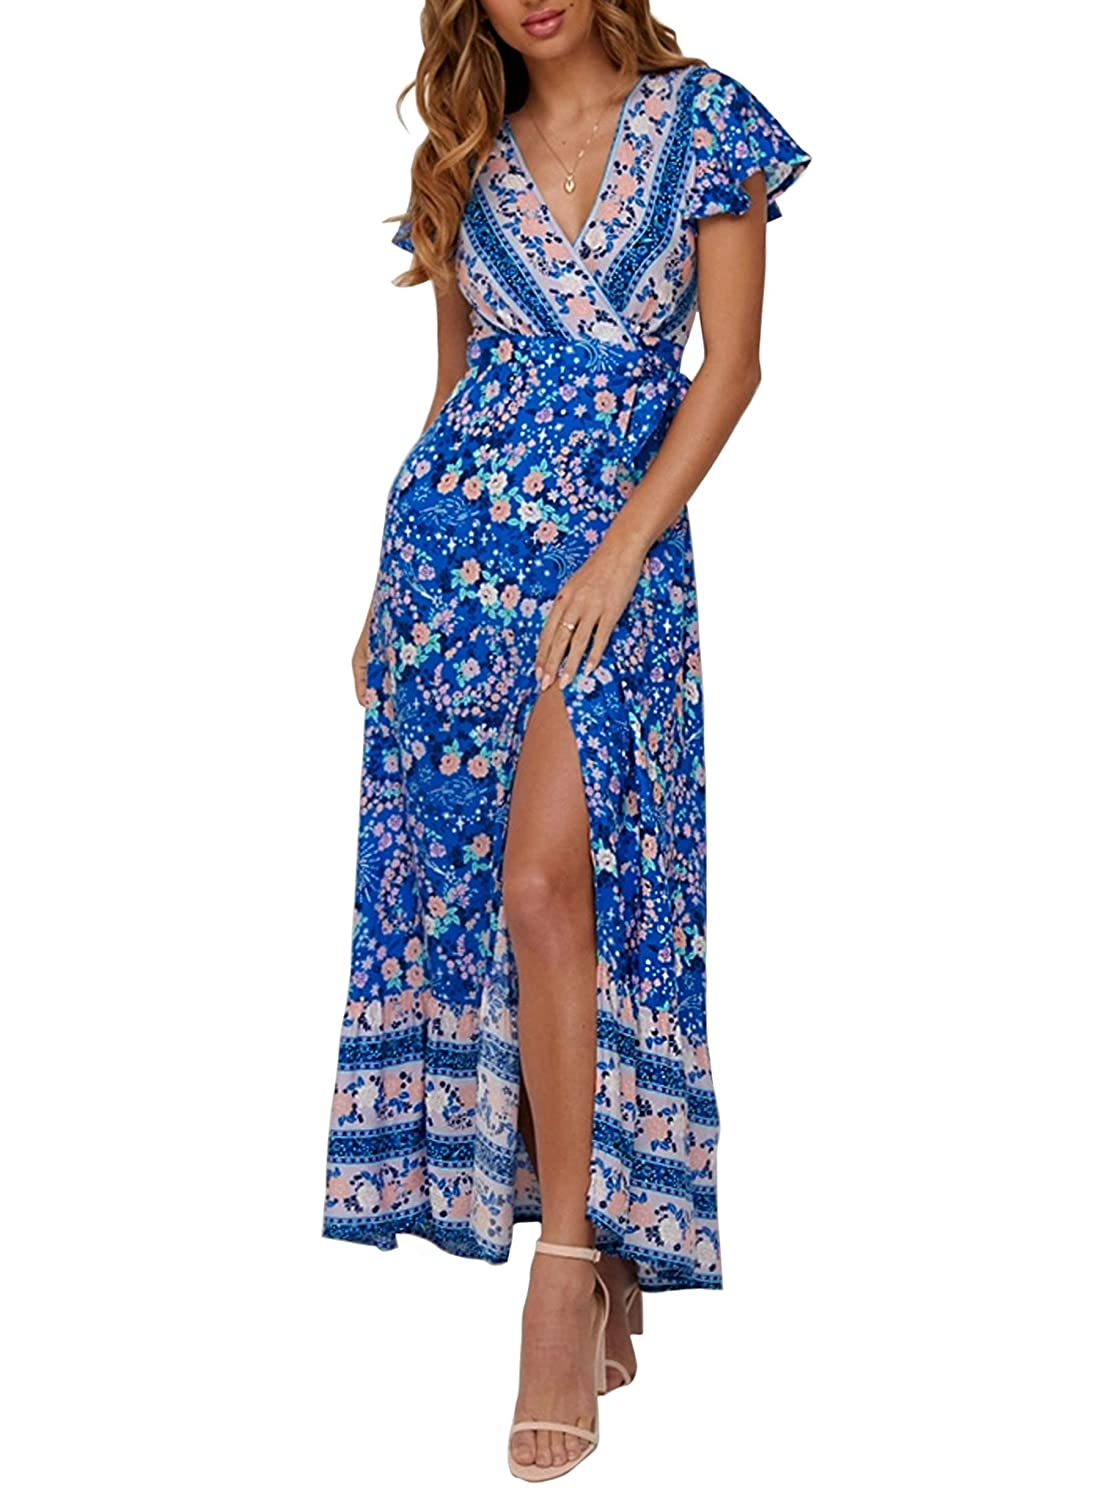 c1095abb2e35 ZESICA Women's Bohemian Floral Printed Wrap V Neck Short Sleeve Split Beach  Party Maxi Dress at Amazon Women's Clothing store: